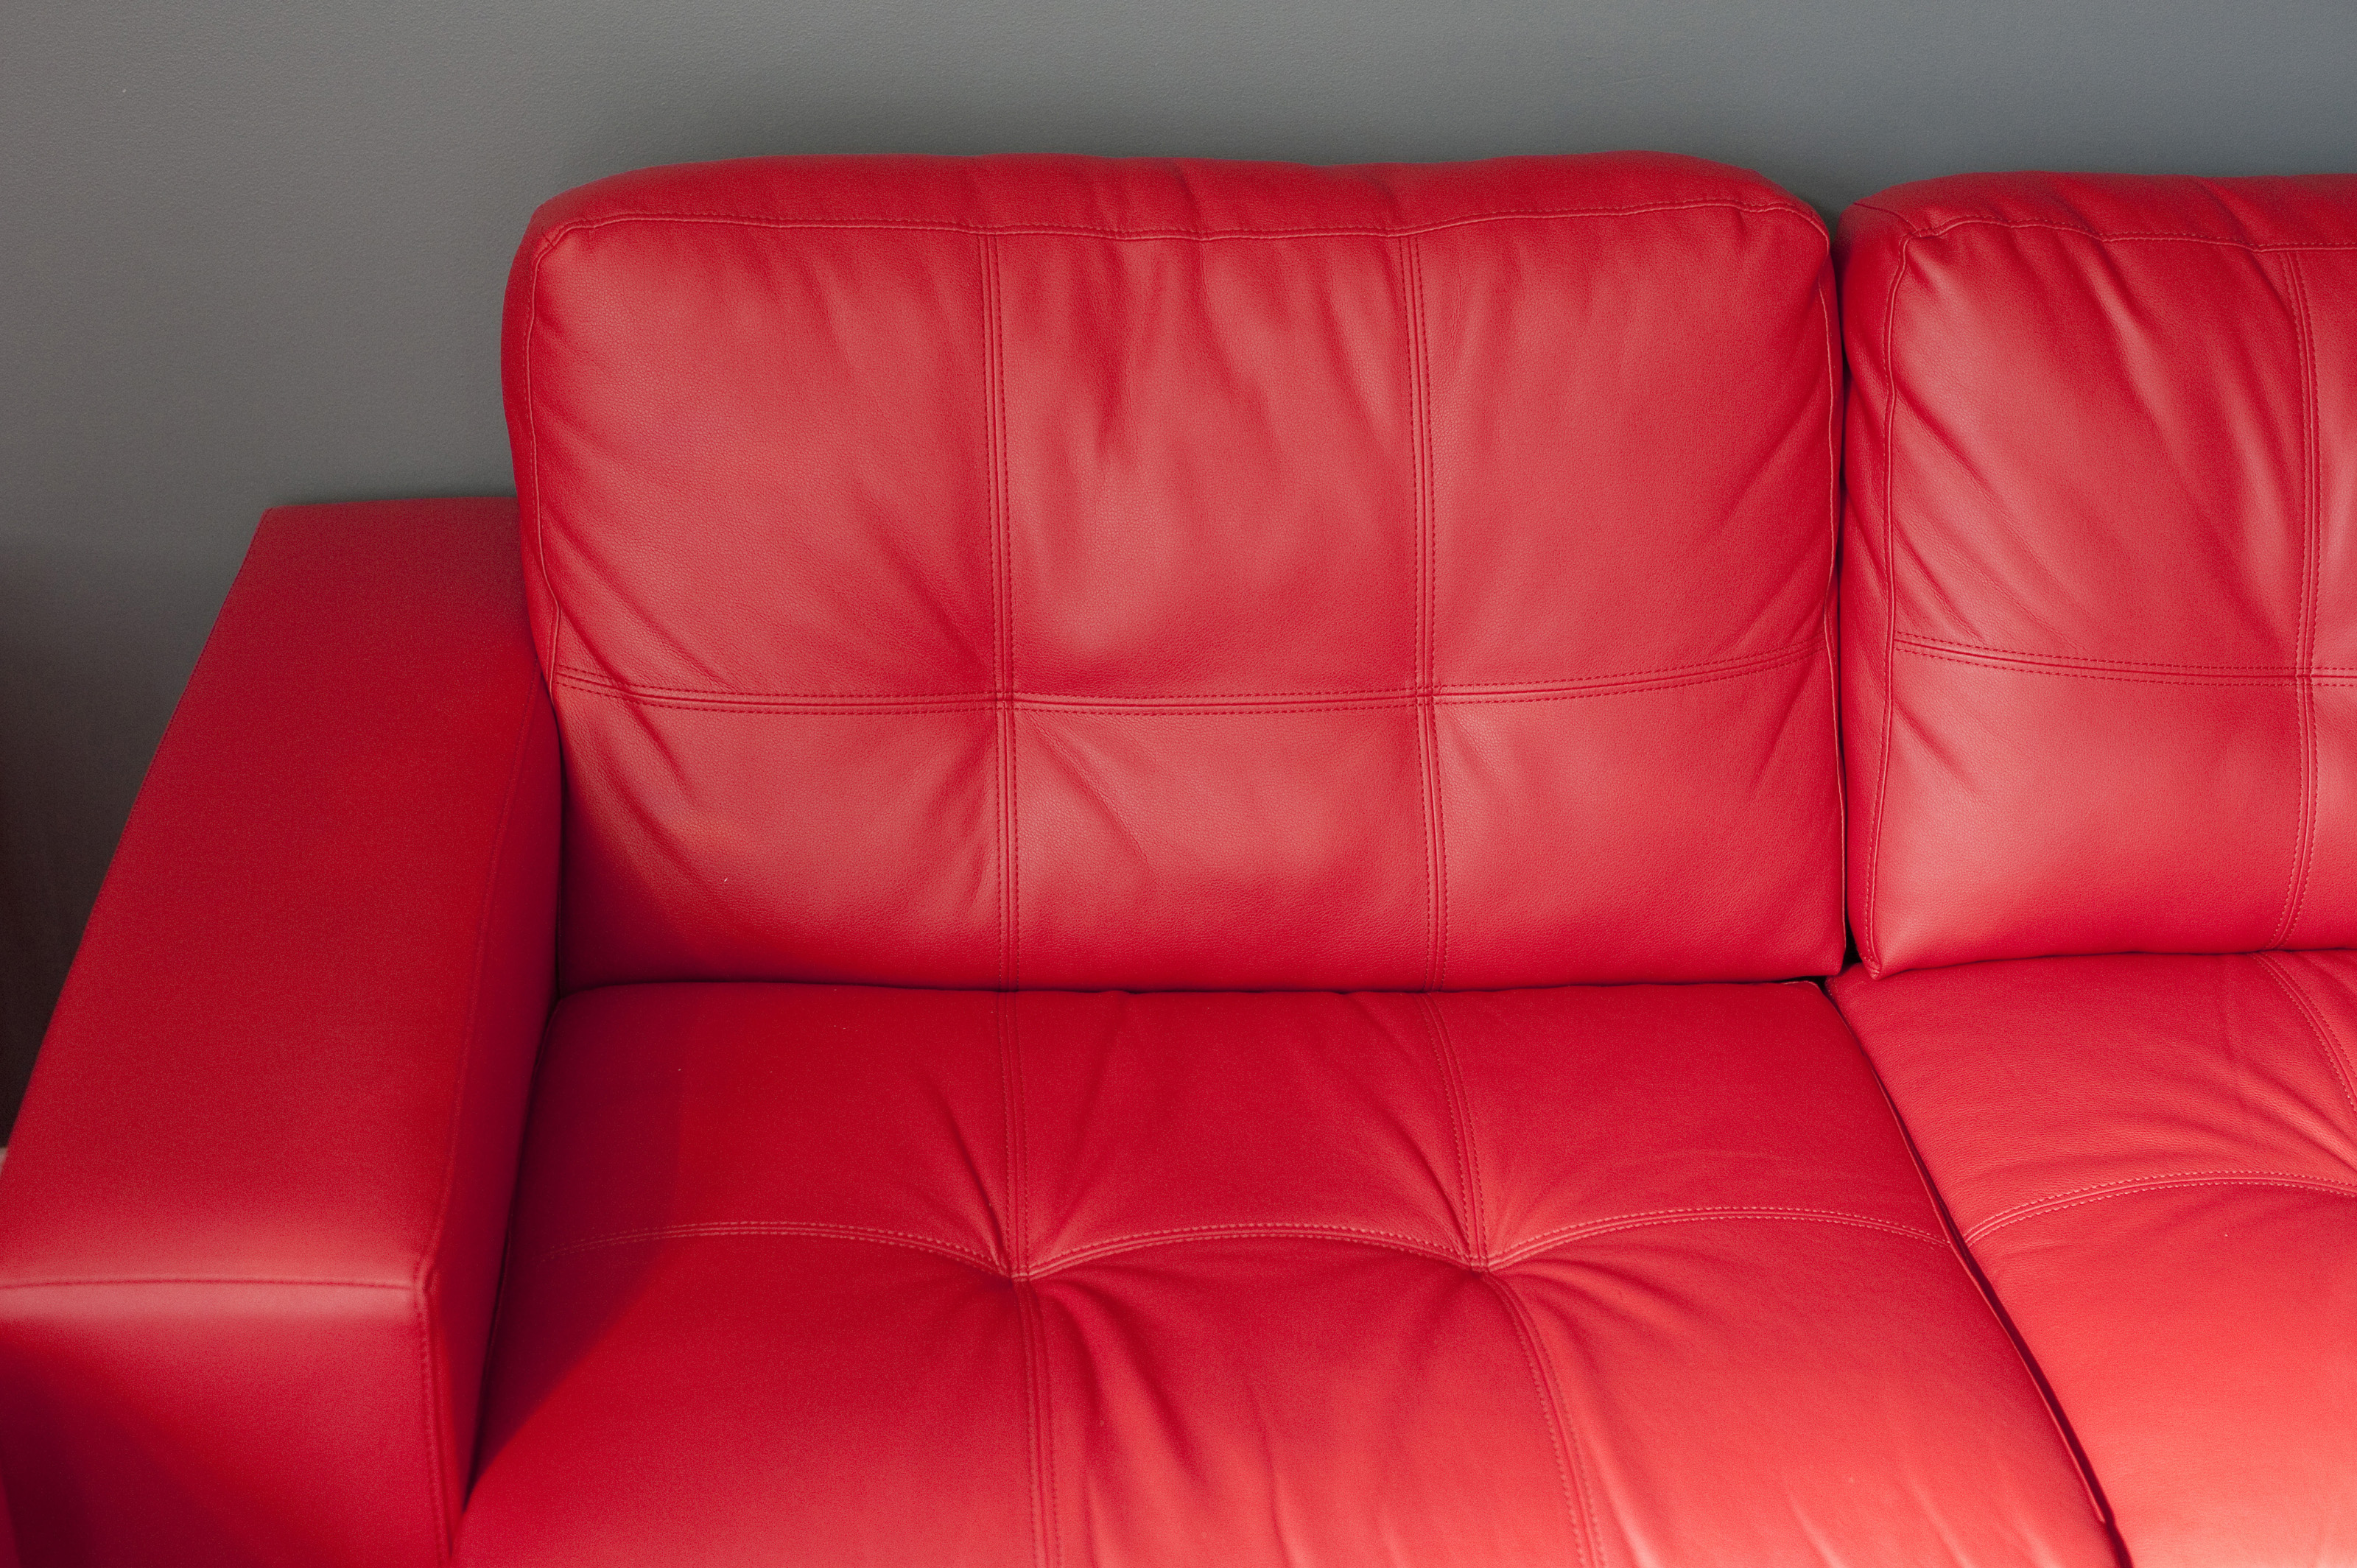 Free Stock Elegant Red Leather Sofa at the Living Room